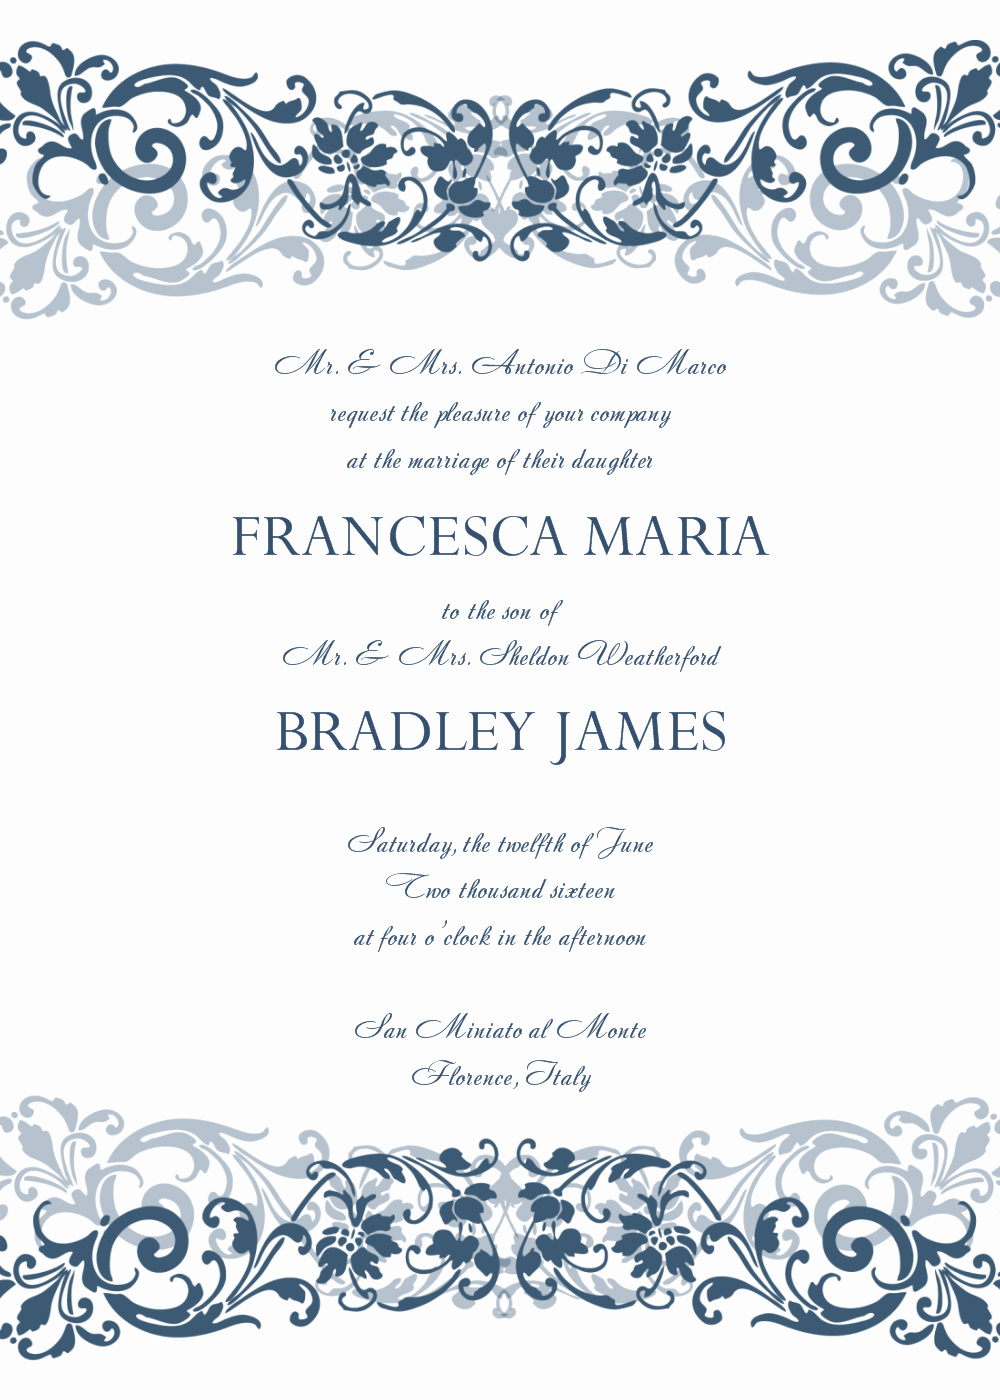 Wedding Invitation Wording Template Fresh 8 Free Wedding Invitation Templates Excel Pdf formats